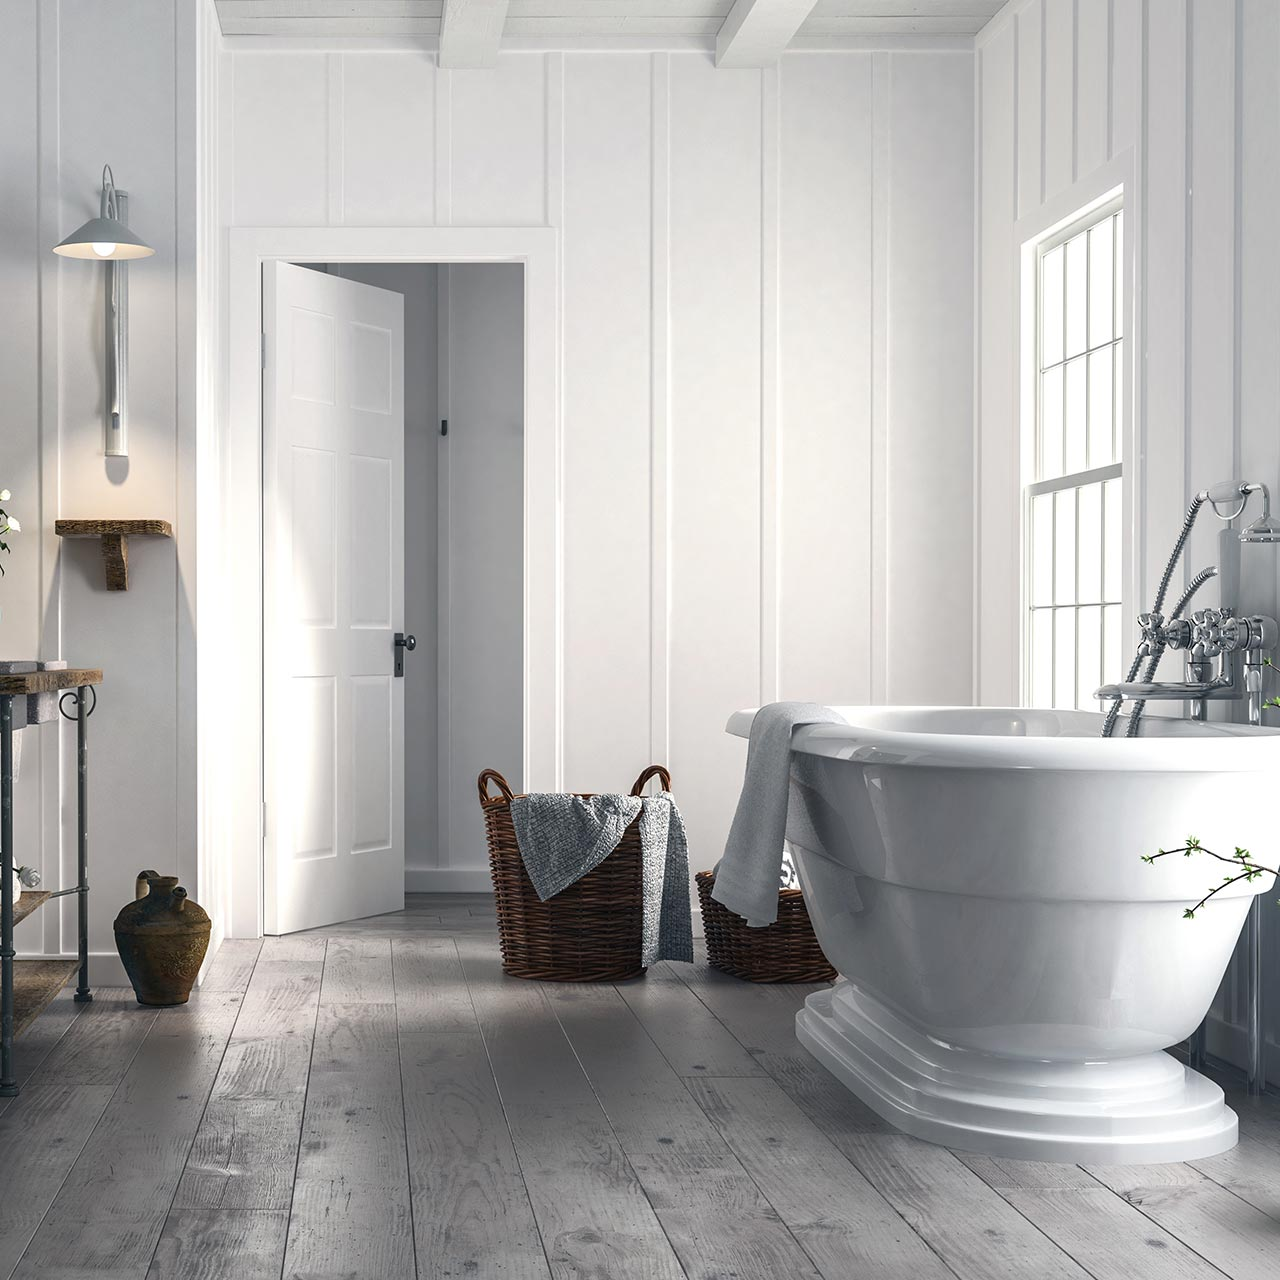 5 Ways To Make Your Home Into A Rustic Retreat